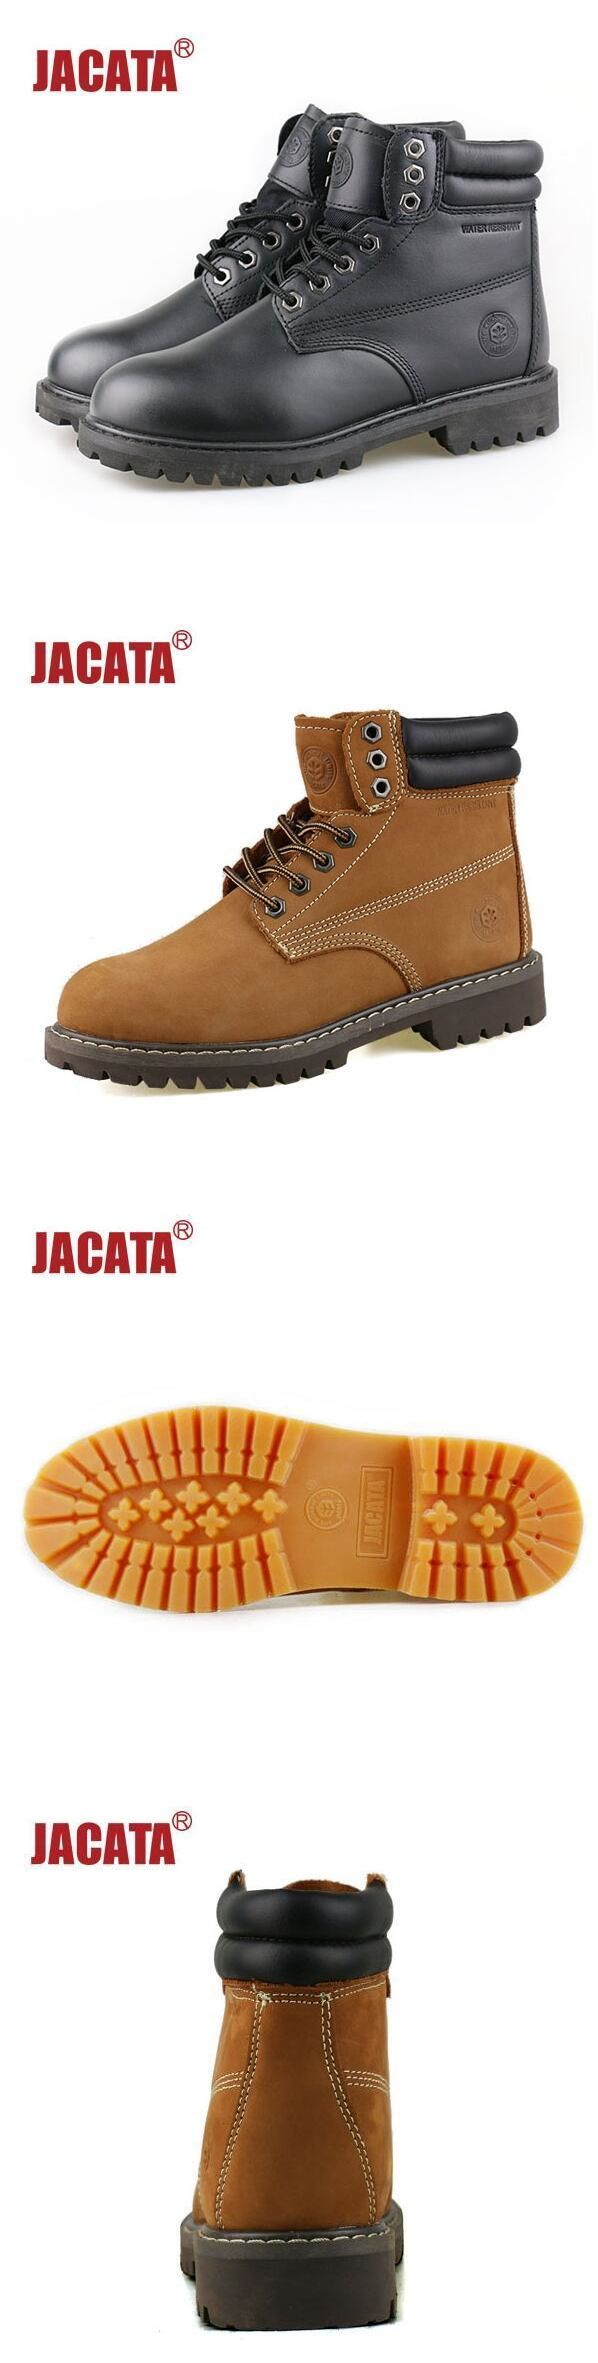 4d0c508abcf Boots 11498: Jacata Men S Winter Snow Work Boots Shoes 6 Premium ...